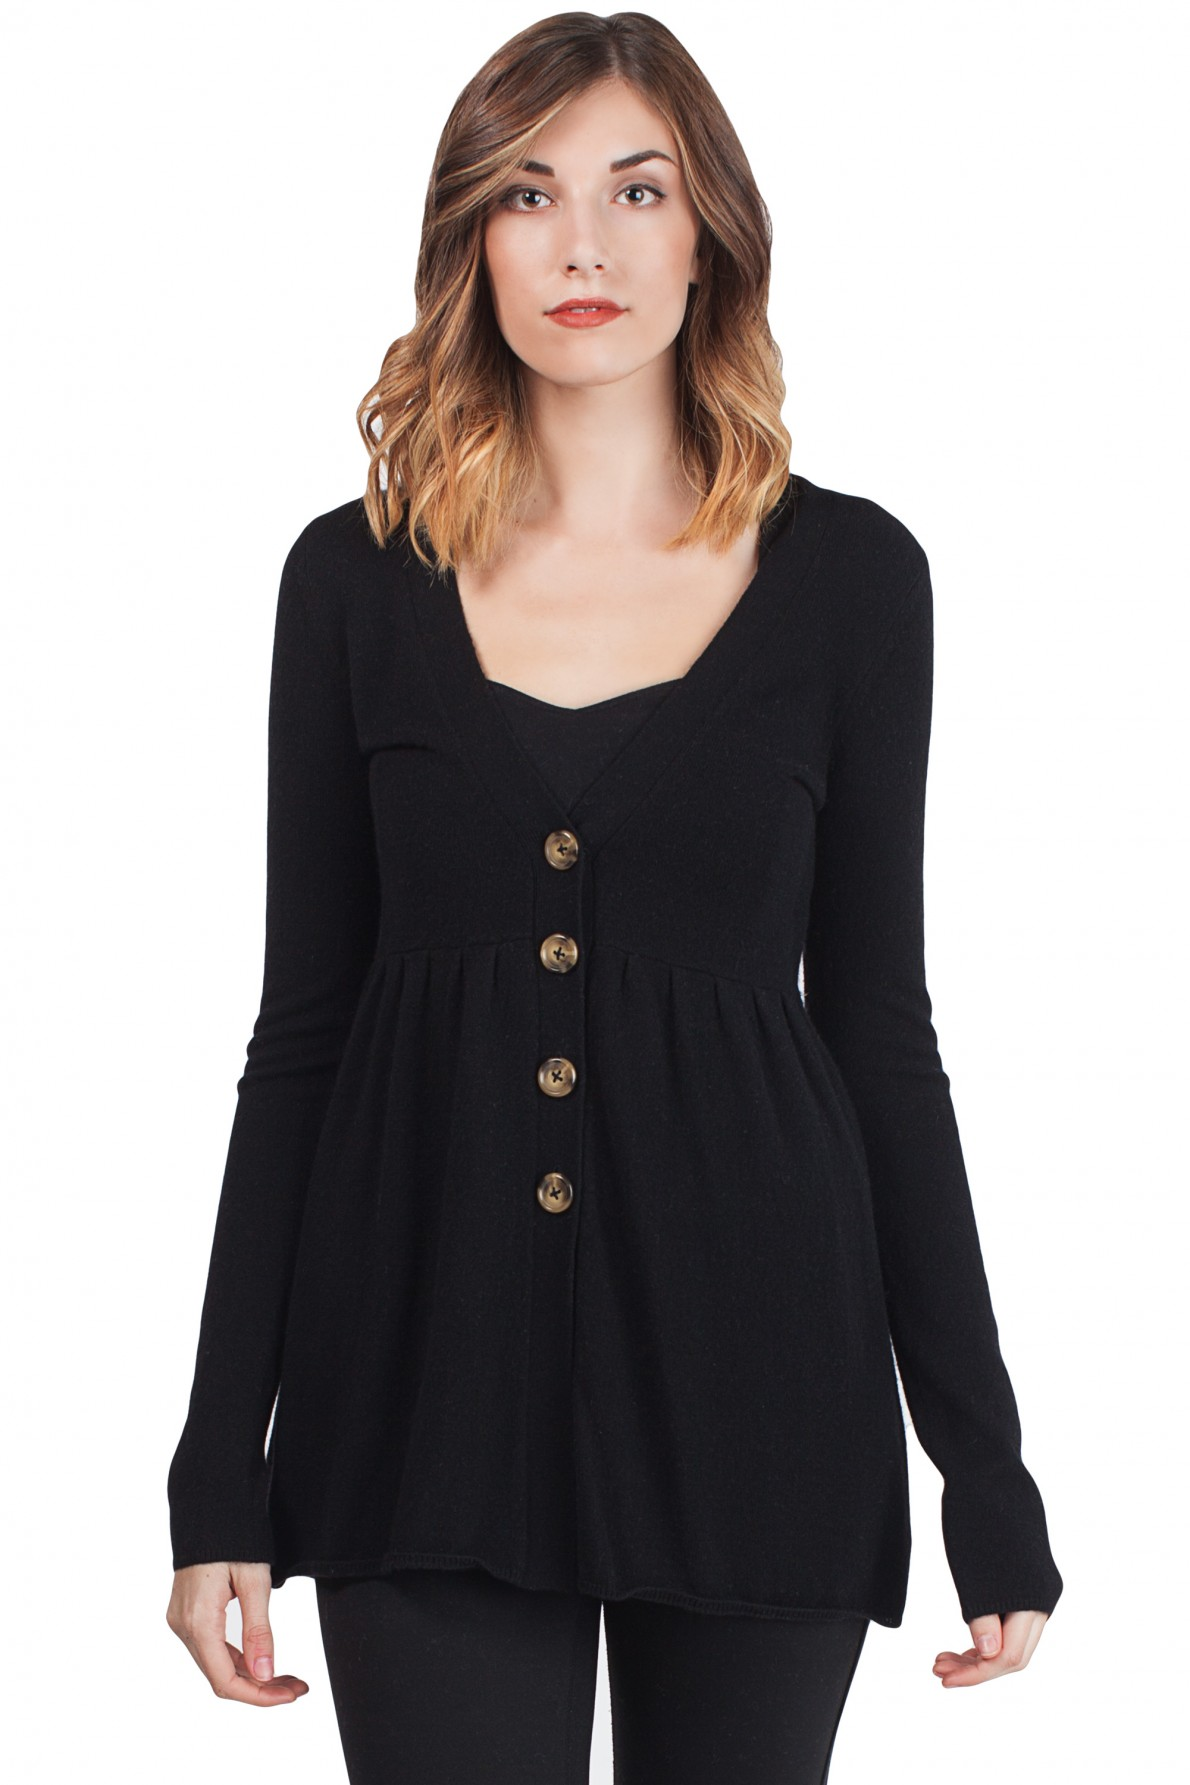 black cashmere deep v neck empire long sleeve tunic cashmere cardigan front  view TOCKKYD